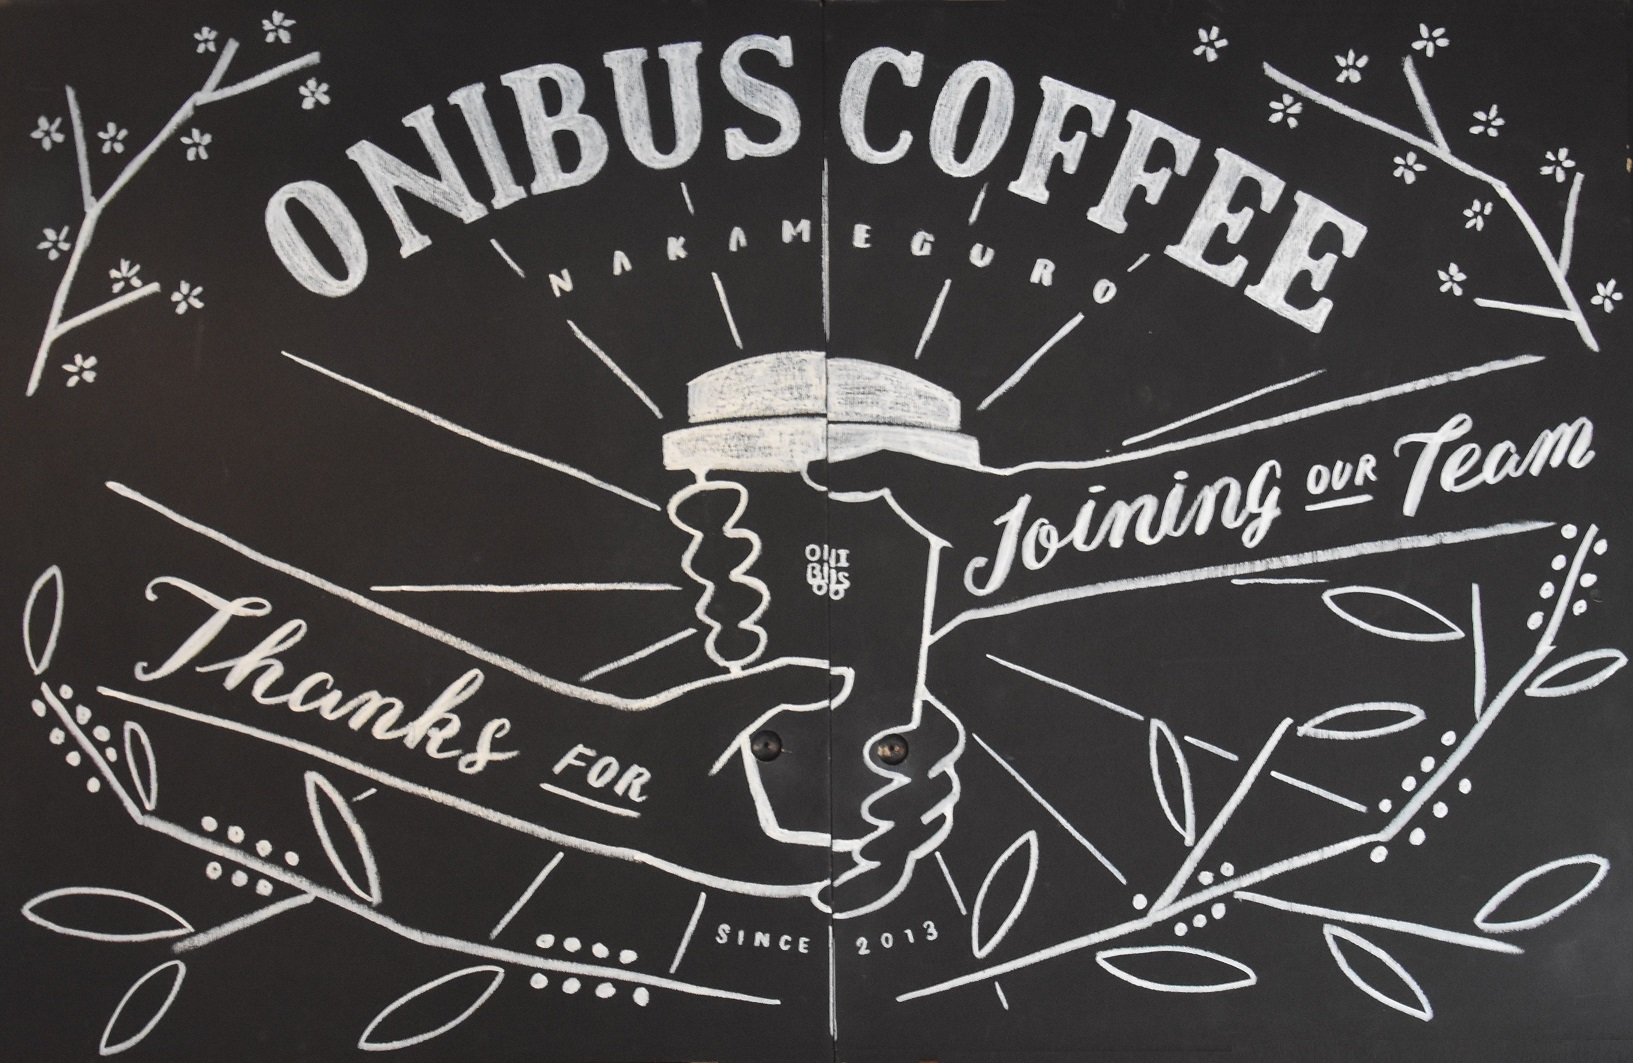 A chalk drawing from the wall upstairs in Onibus Coffee.